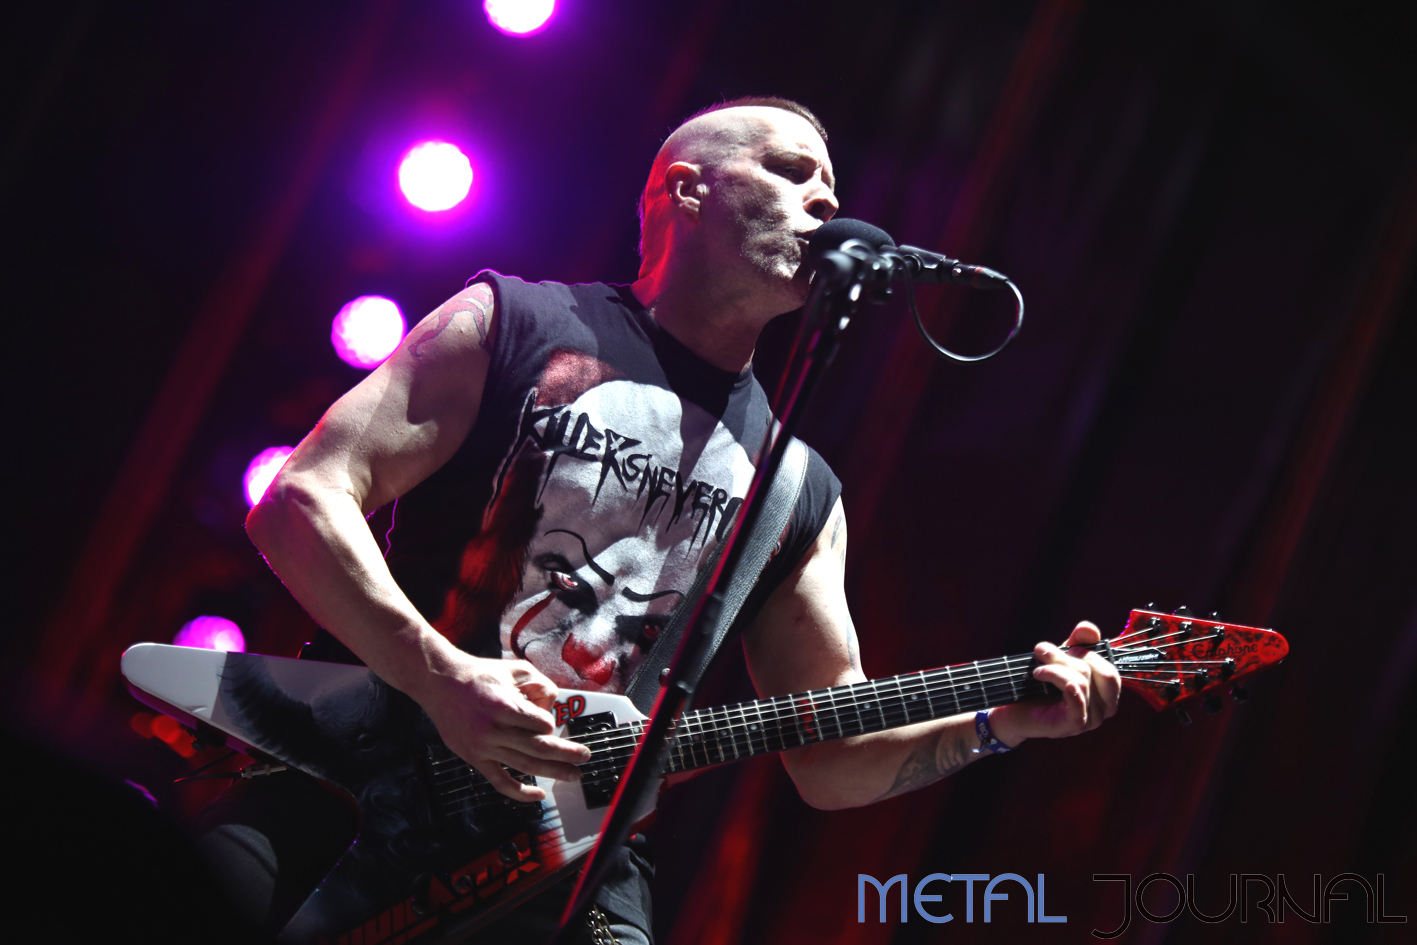 annihilator rock fest 18 - metal journal pic 2